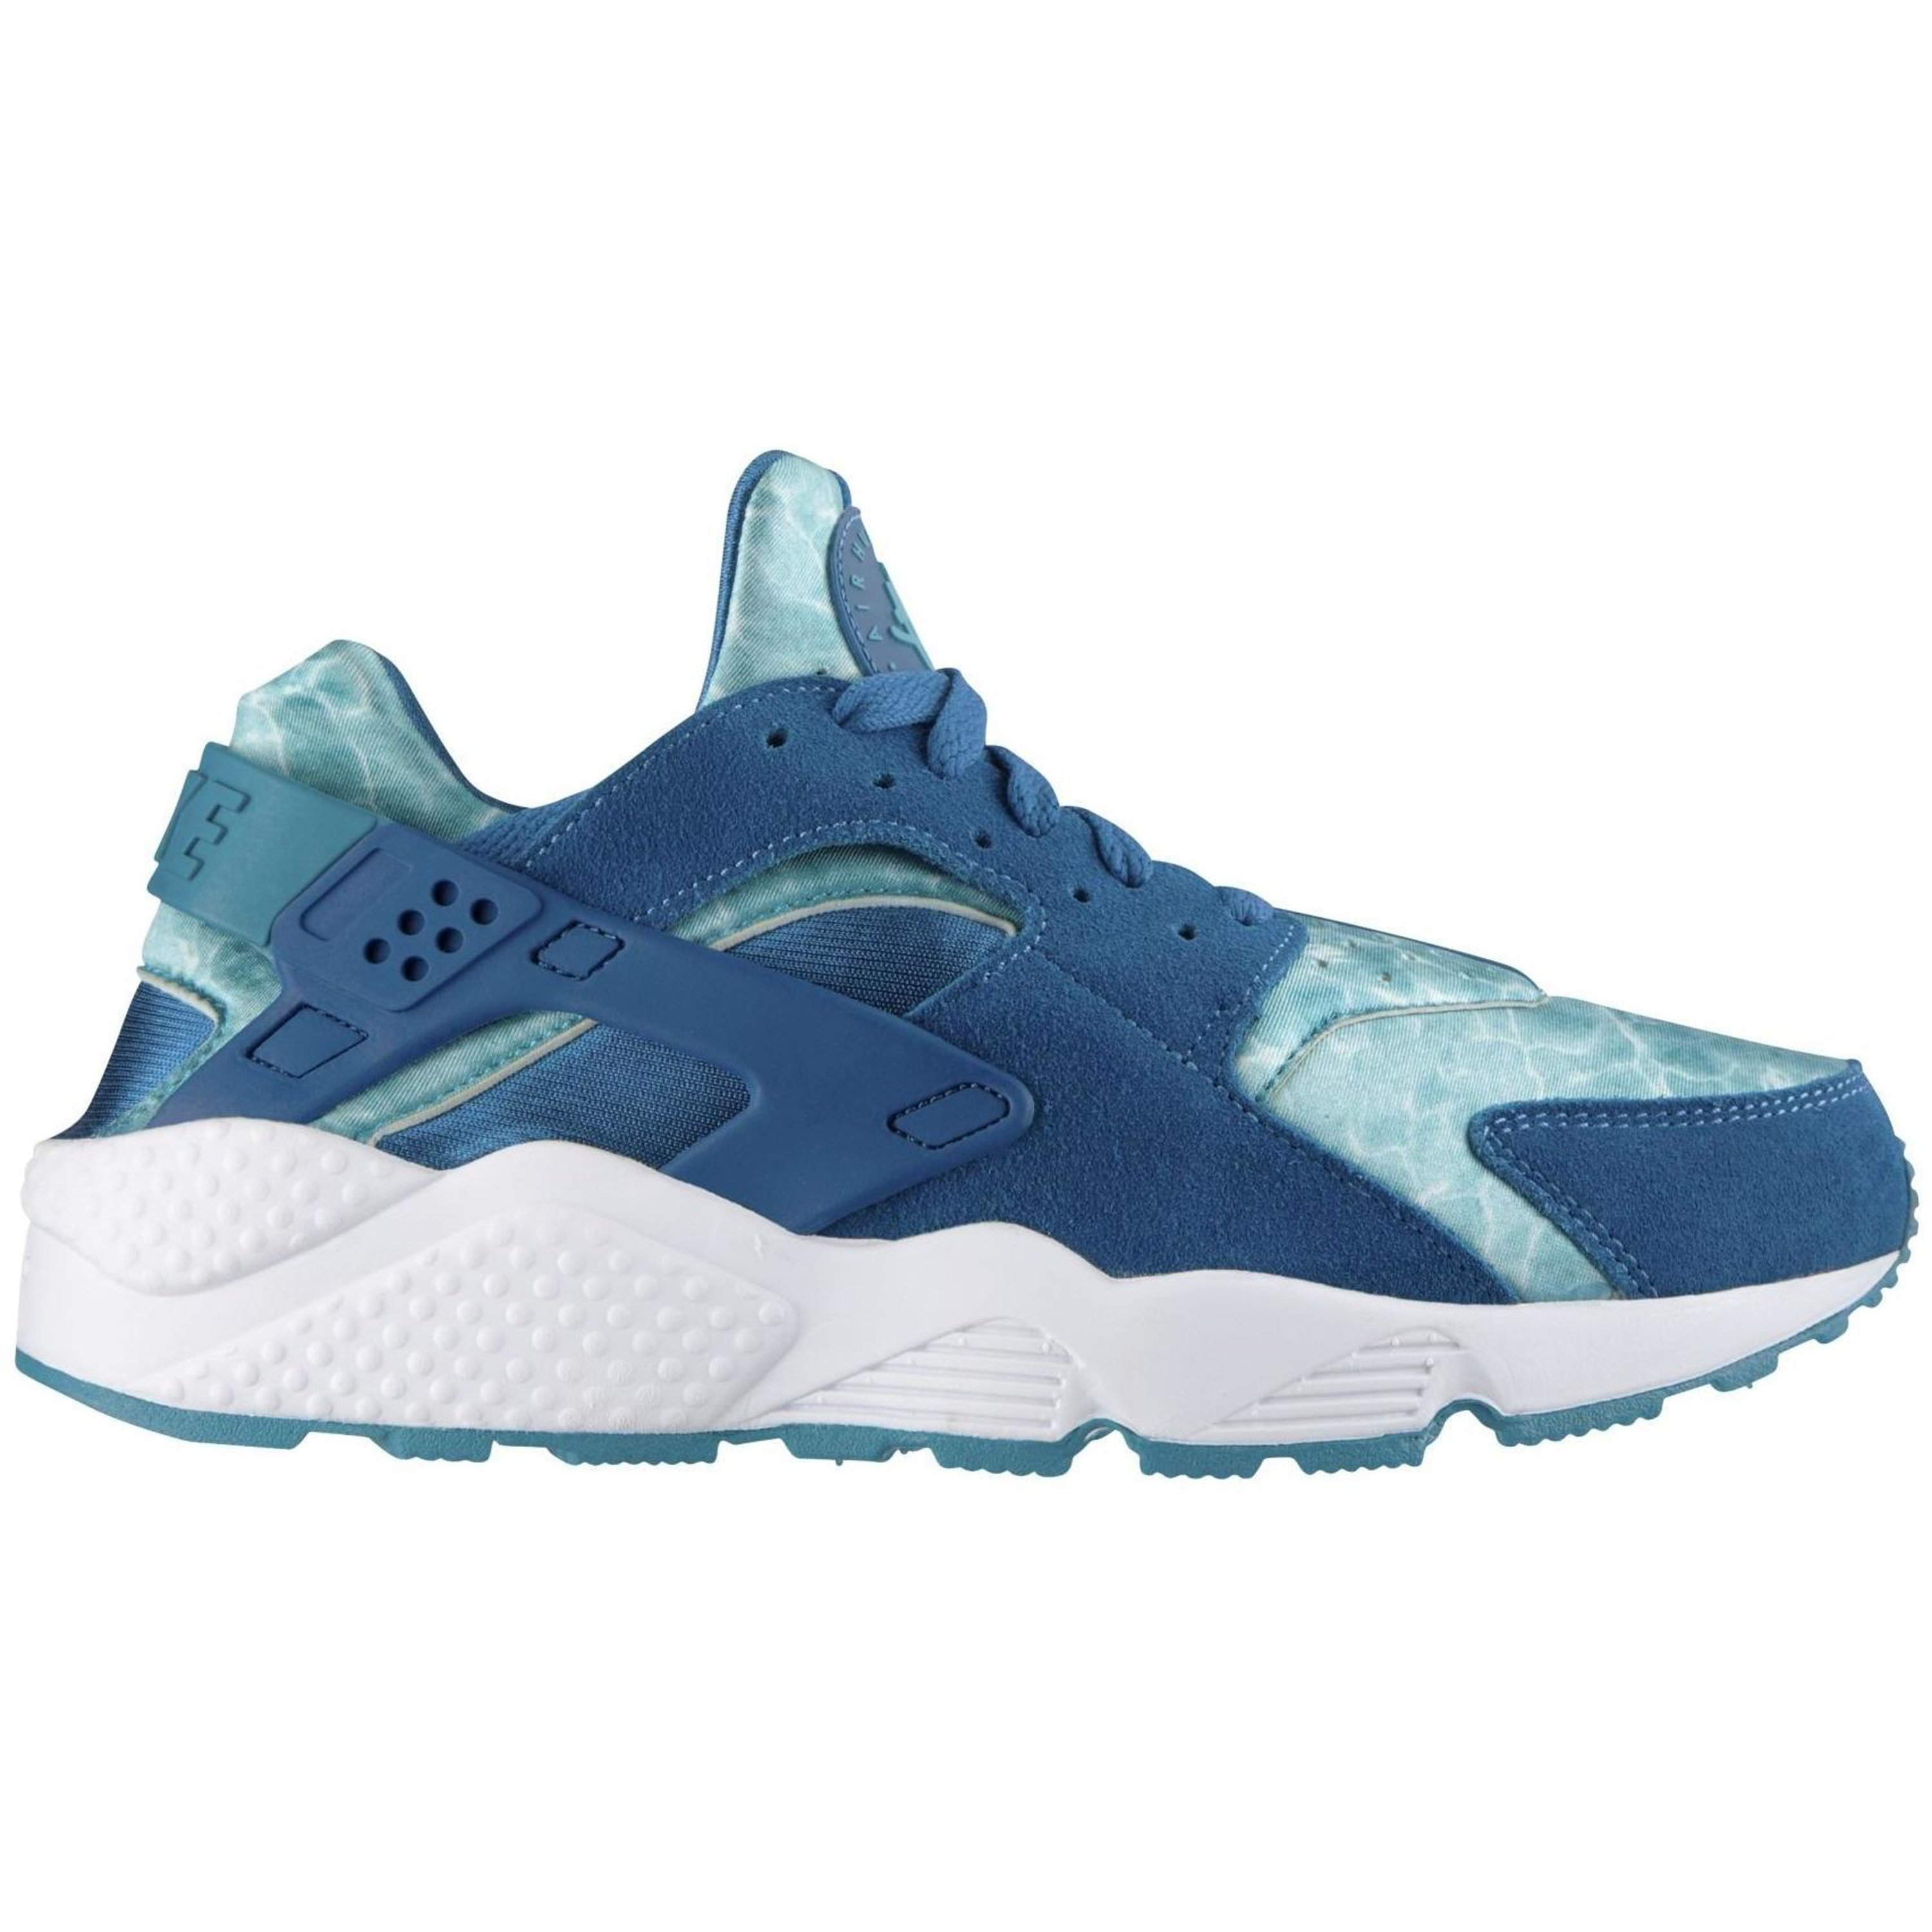 Nike Air Huarache Green Abyss (318429-331)